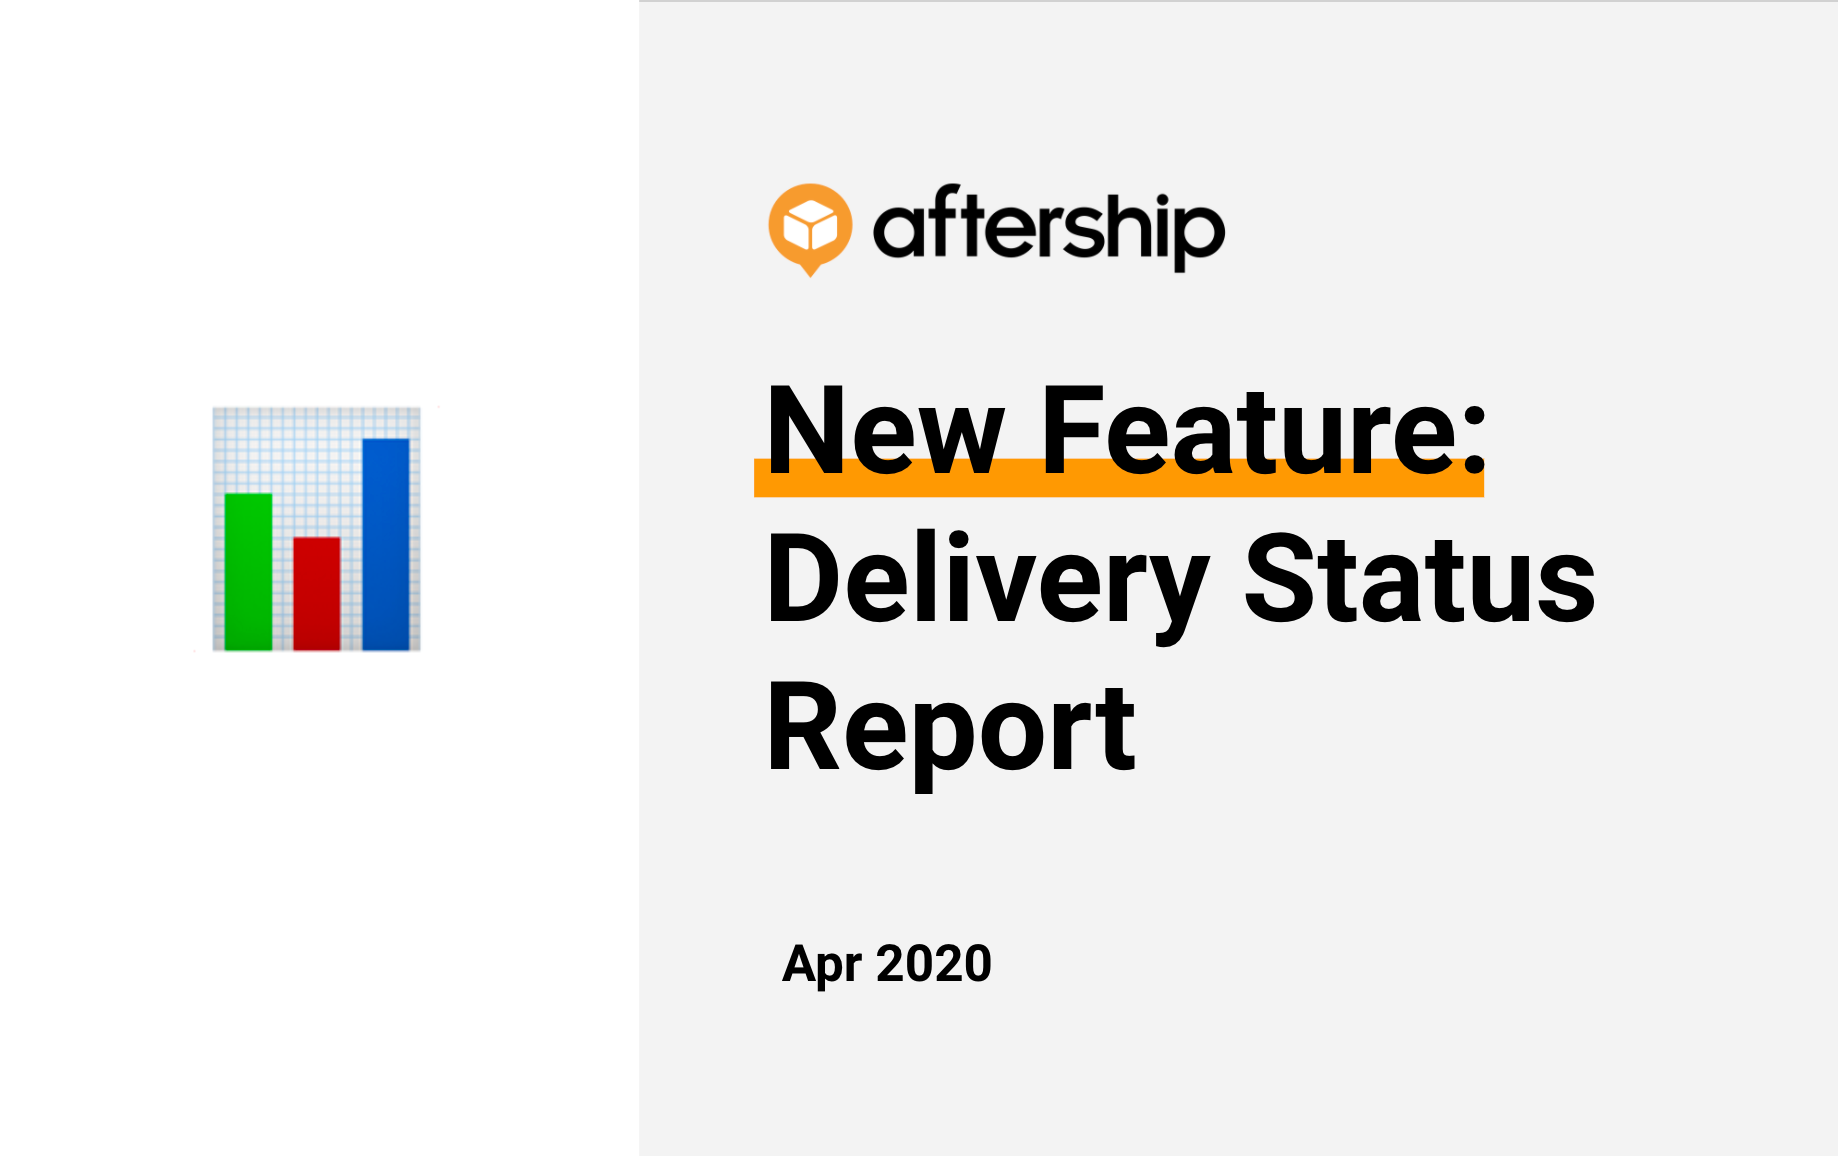 New Feature: Delivery Status Report at AfterShip